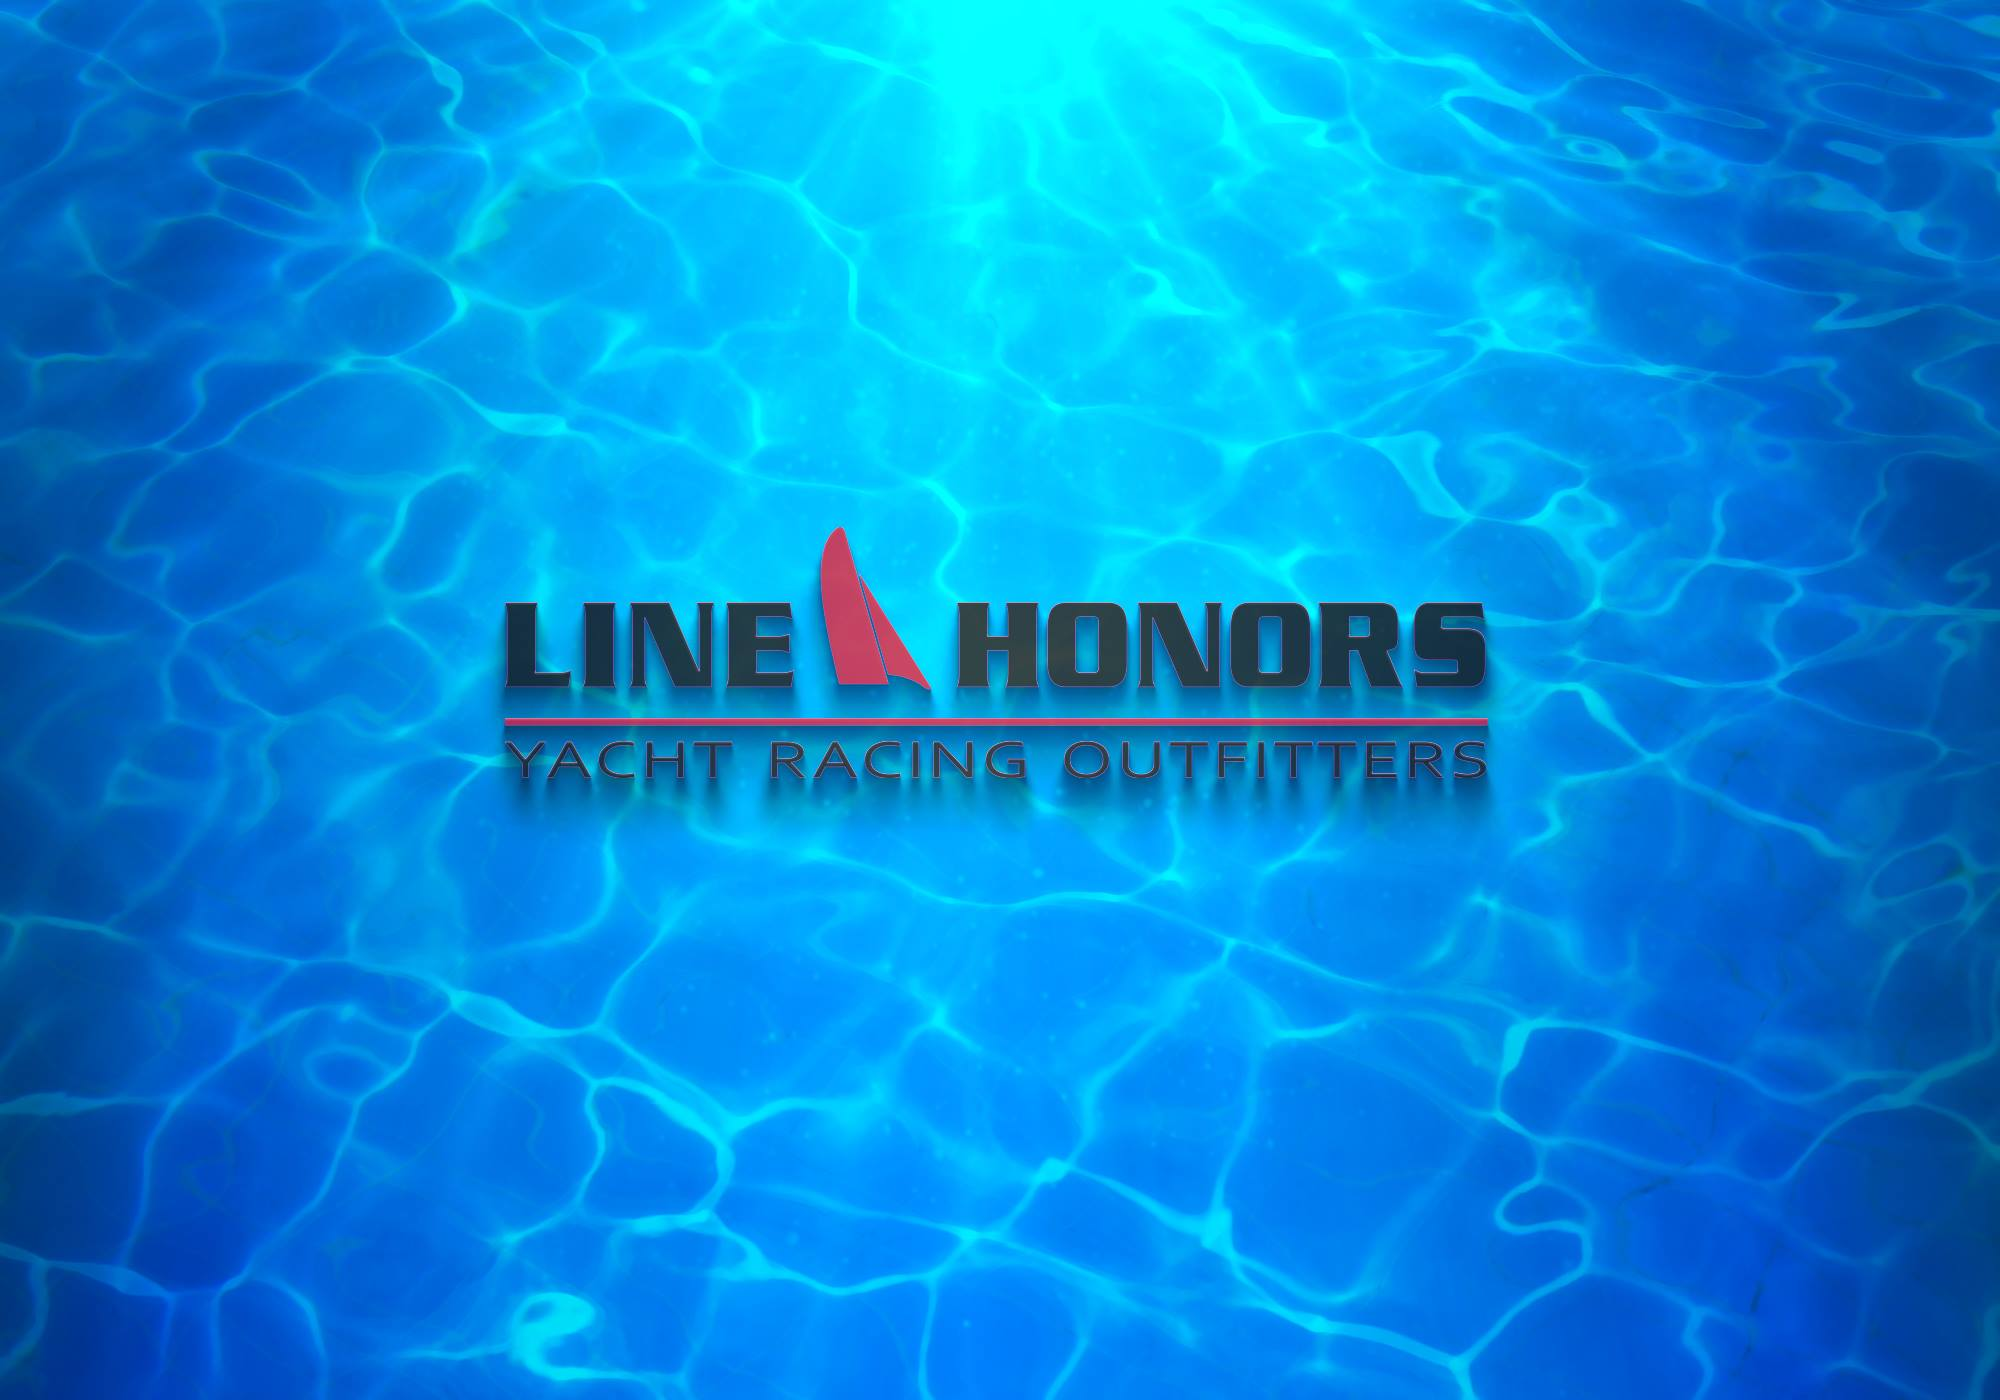 Line Honors-Yacht Racing Outfitters logo